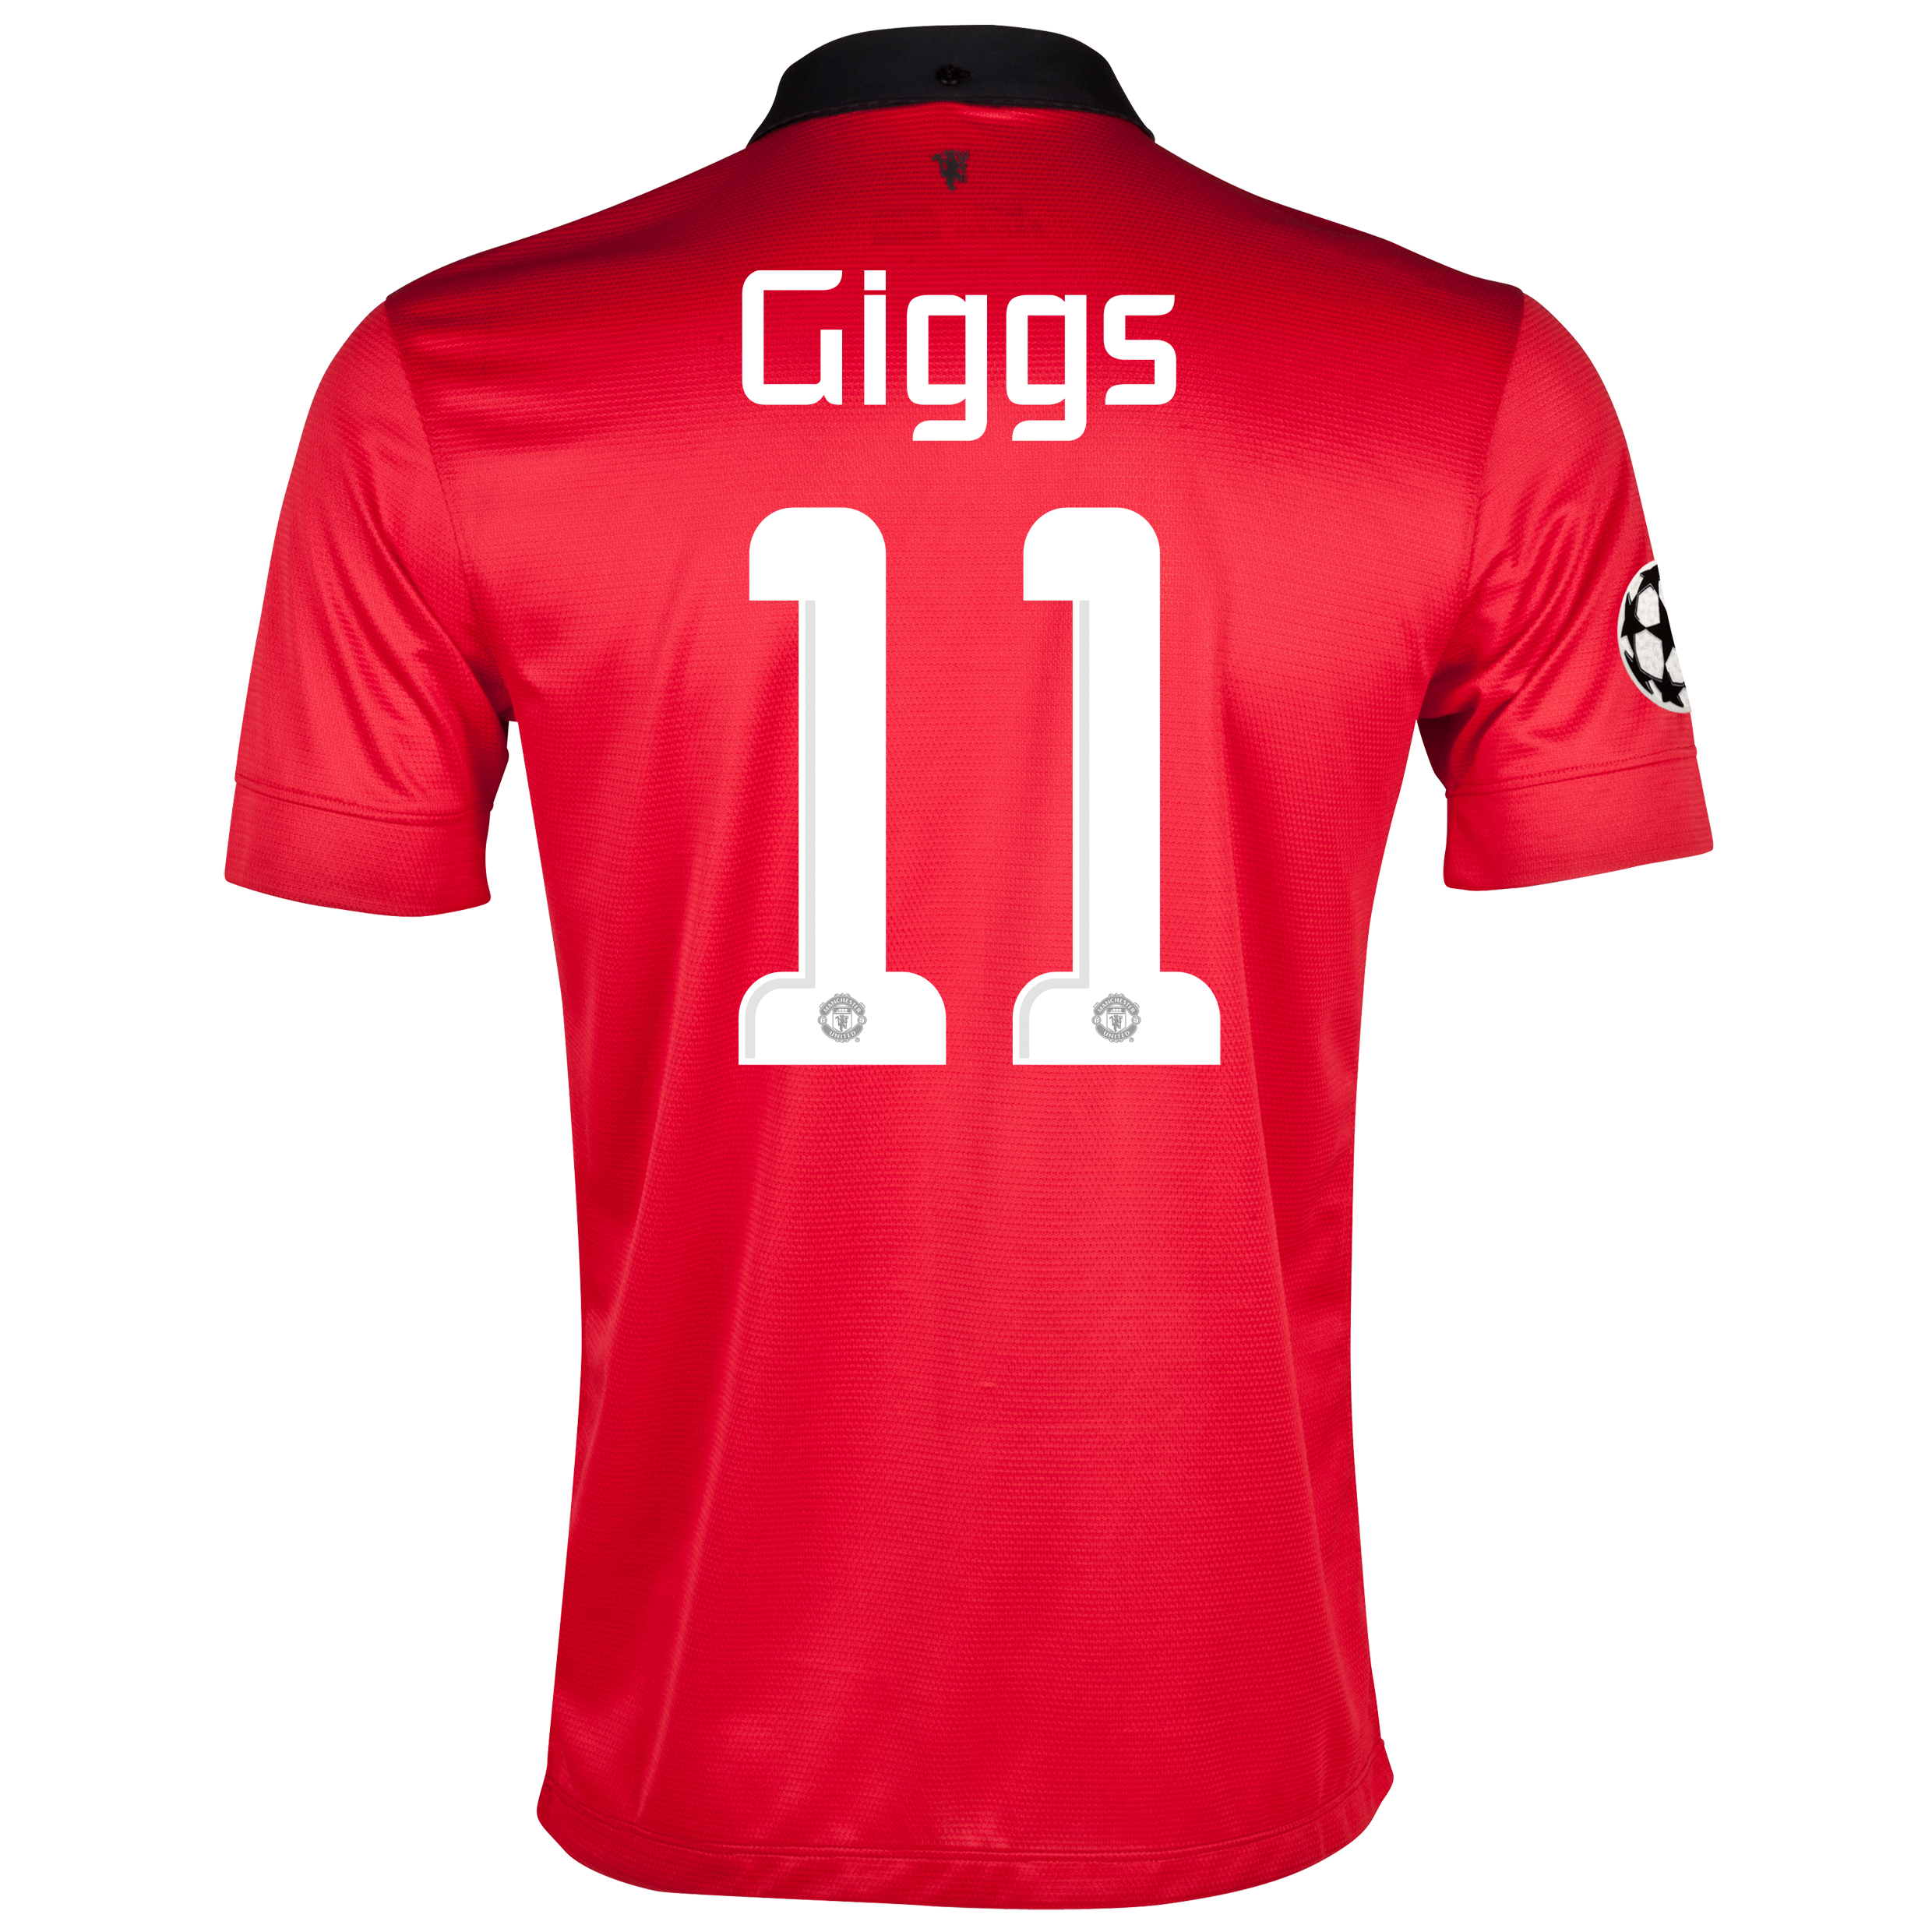 Manchester United UEFA Champions League Home Shirt 2013/14 with Giggs 11 printing